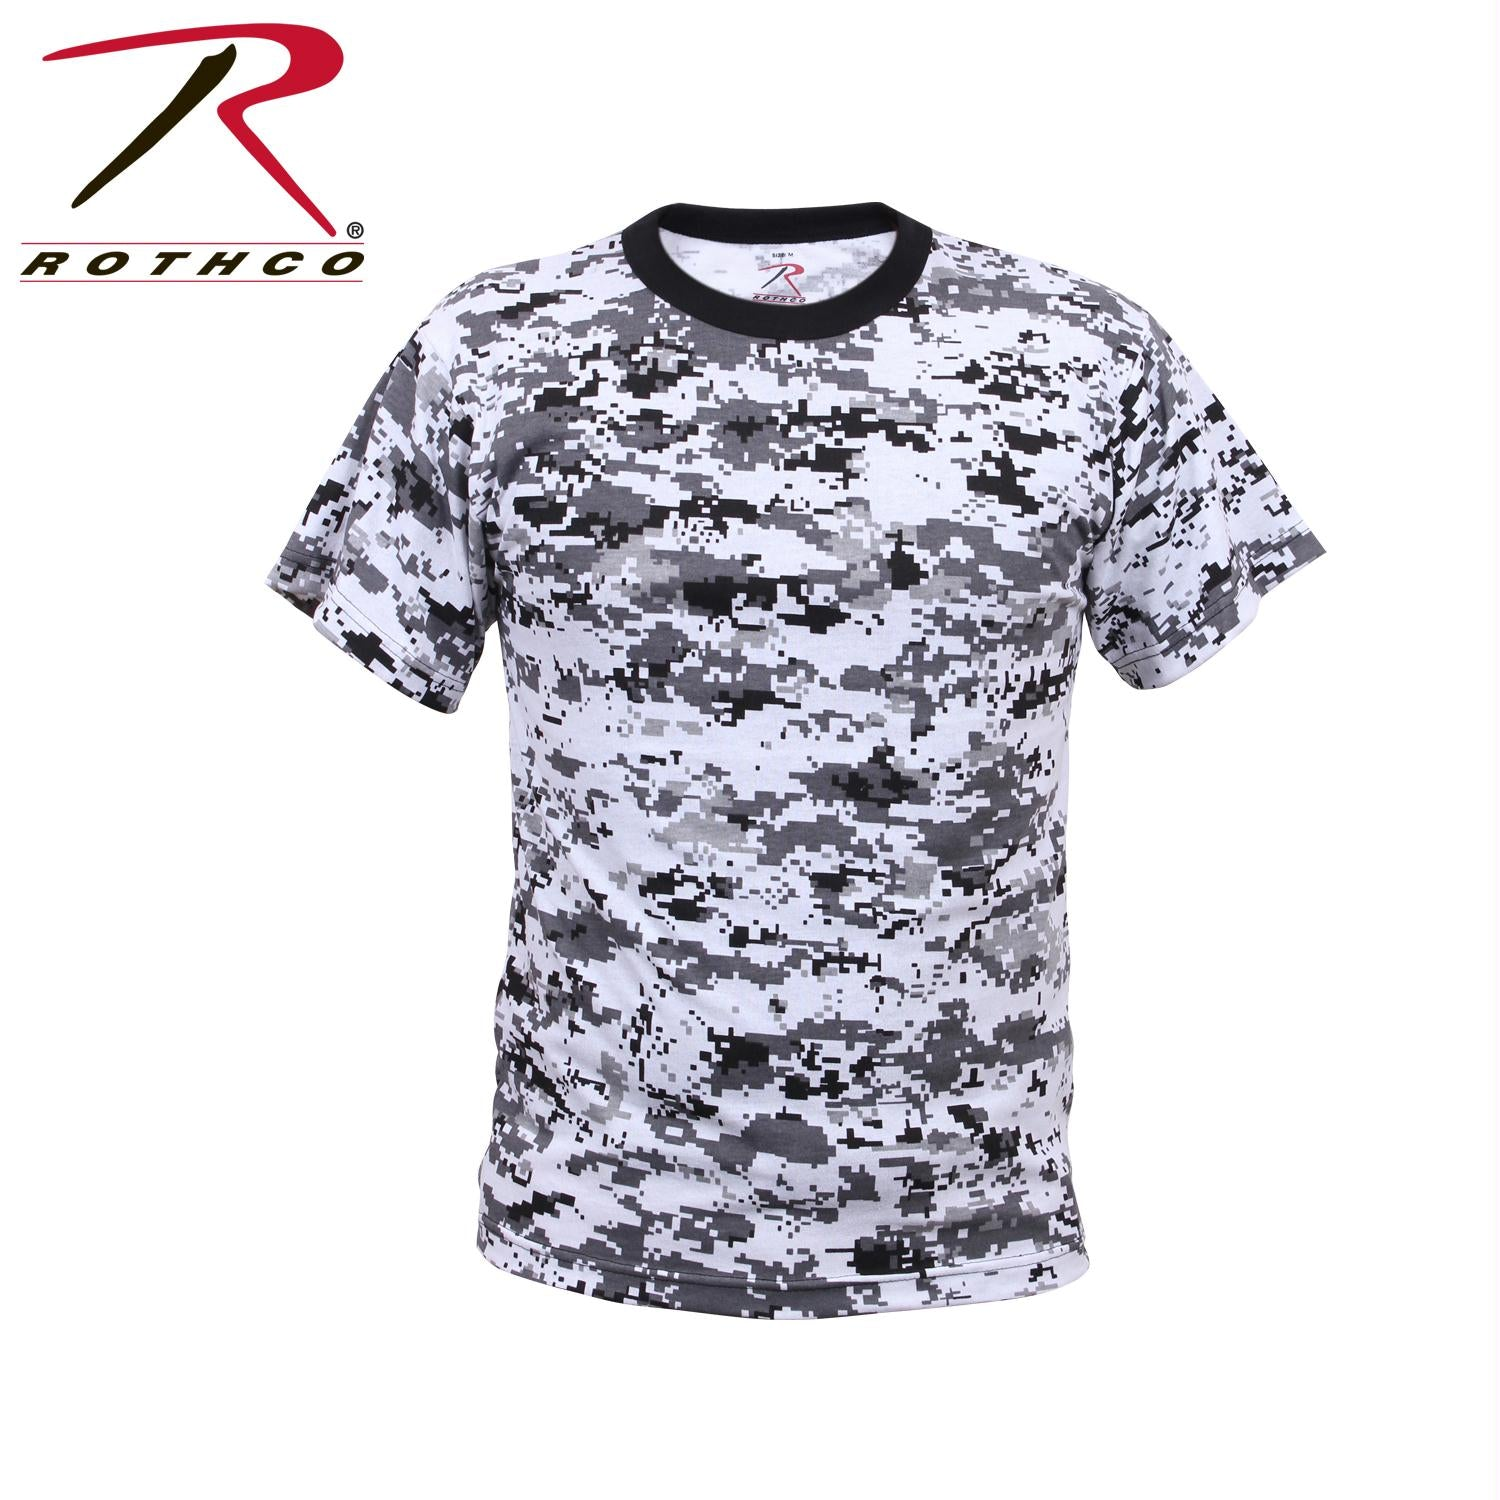 Rothco Digital Camo T-Shirt - City Digital Camo / S